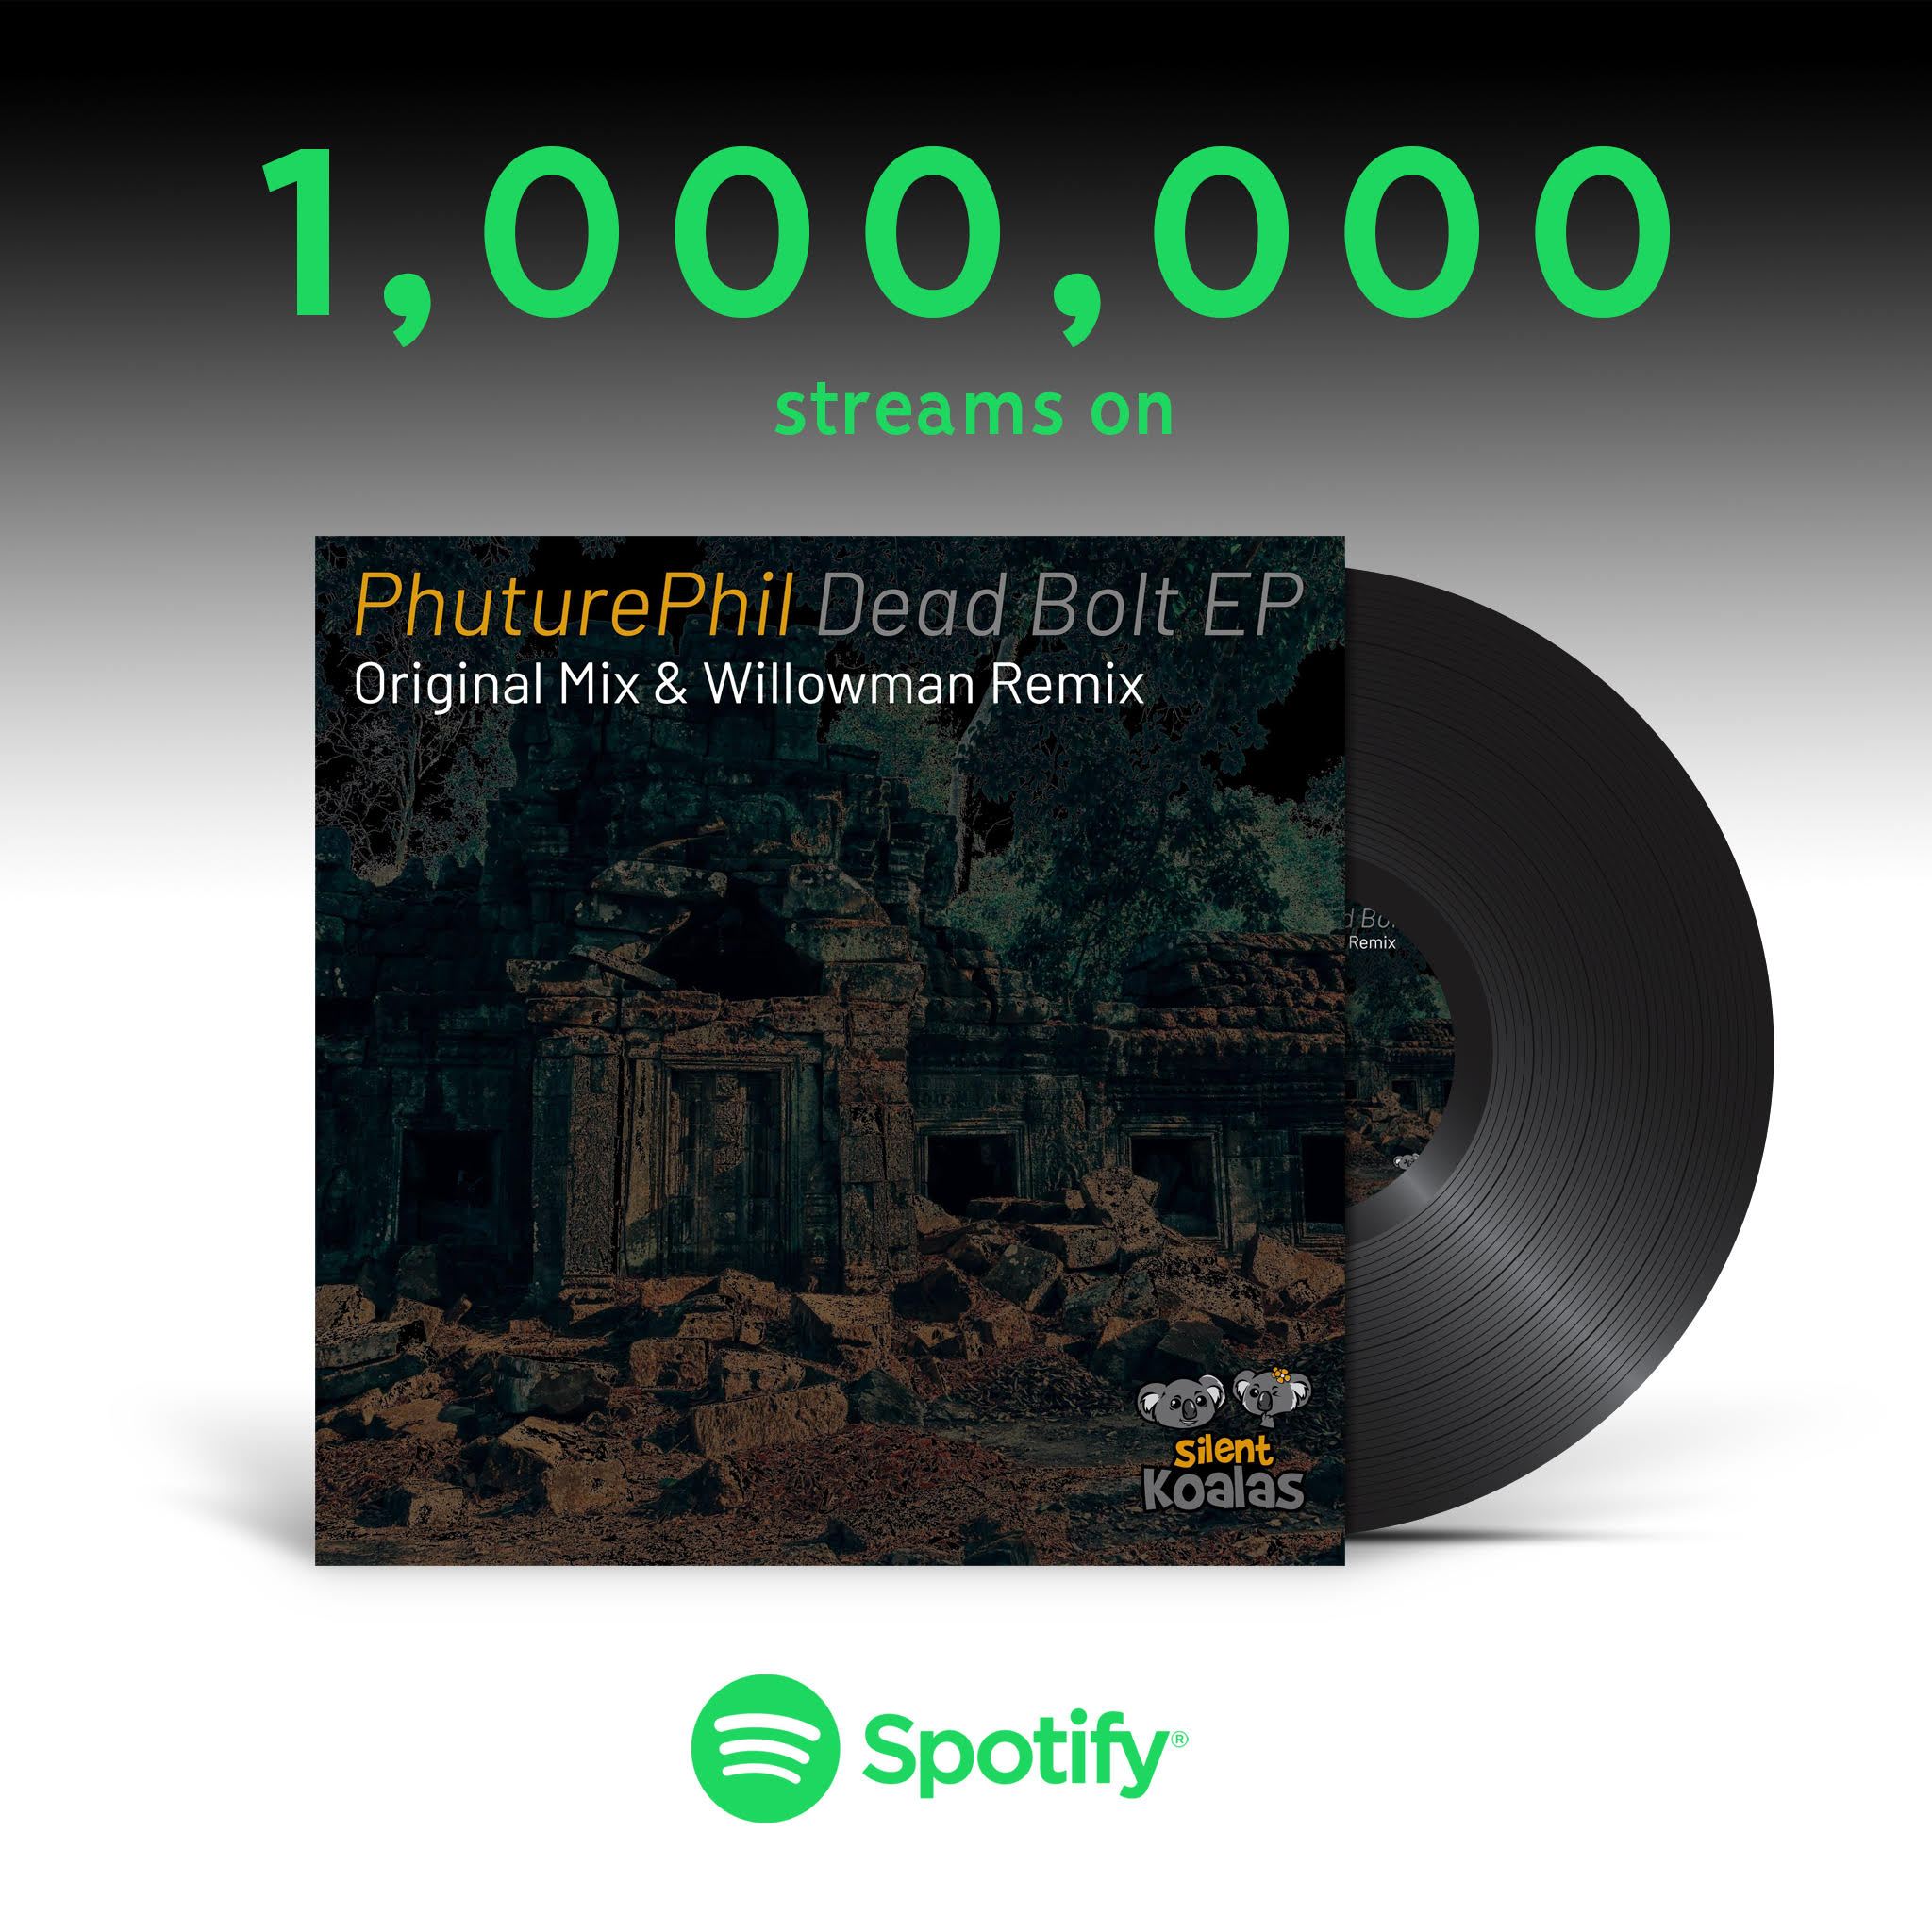 PhuturePhil- Dead Bolt 1 Million Streams on Spotify